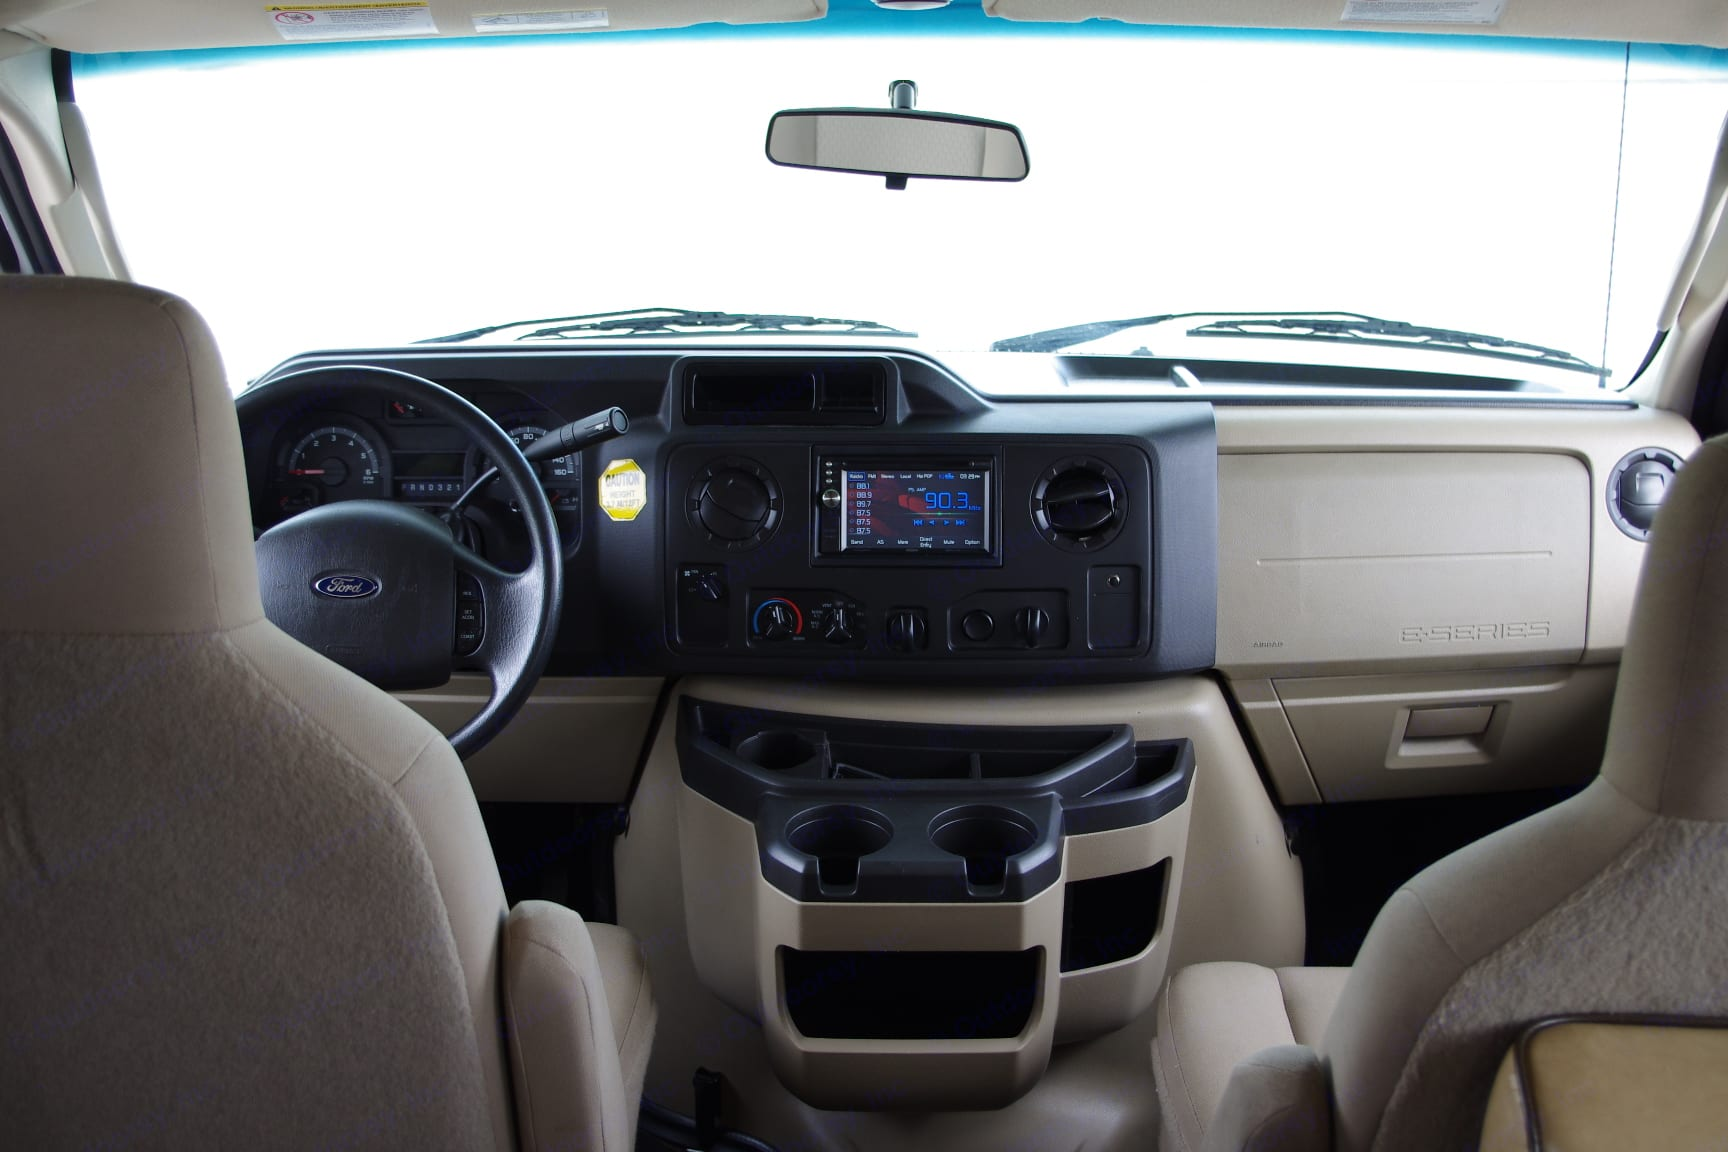 Driving cockpit - everything you need. Rear camera, Navigation and GPS, and full DVD functions. Forest River Sunseeker 2015